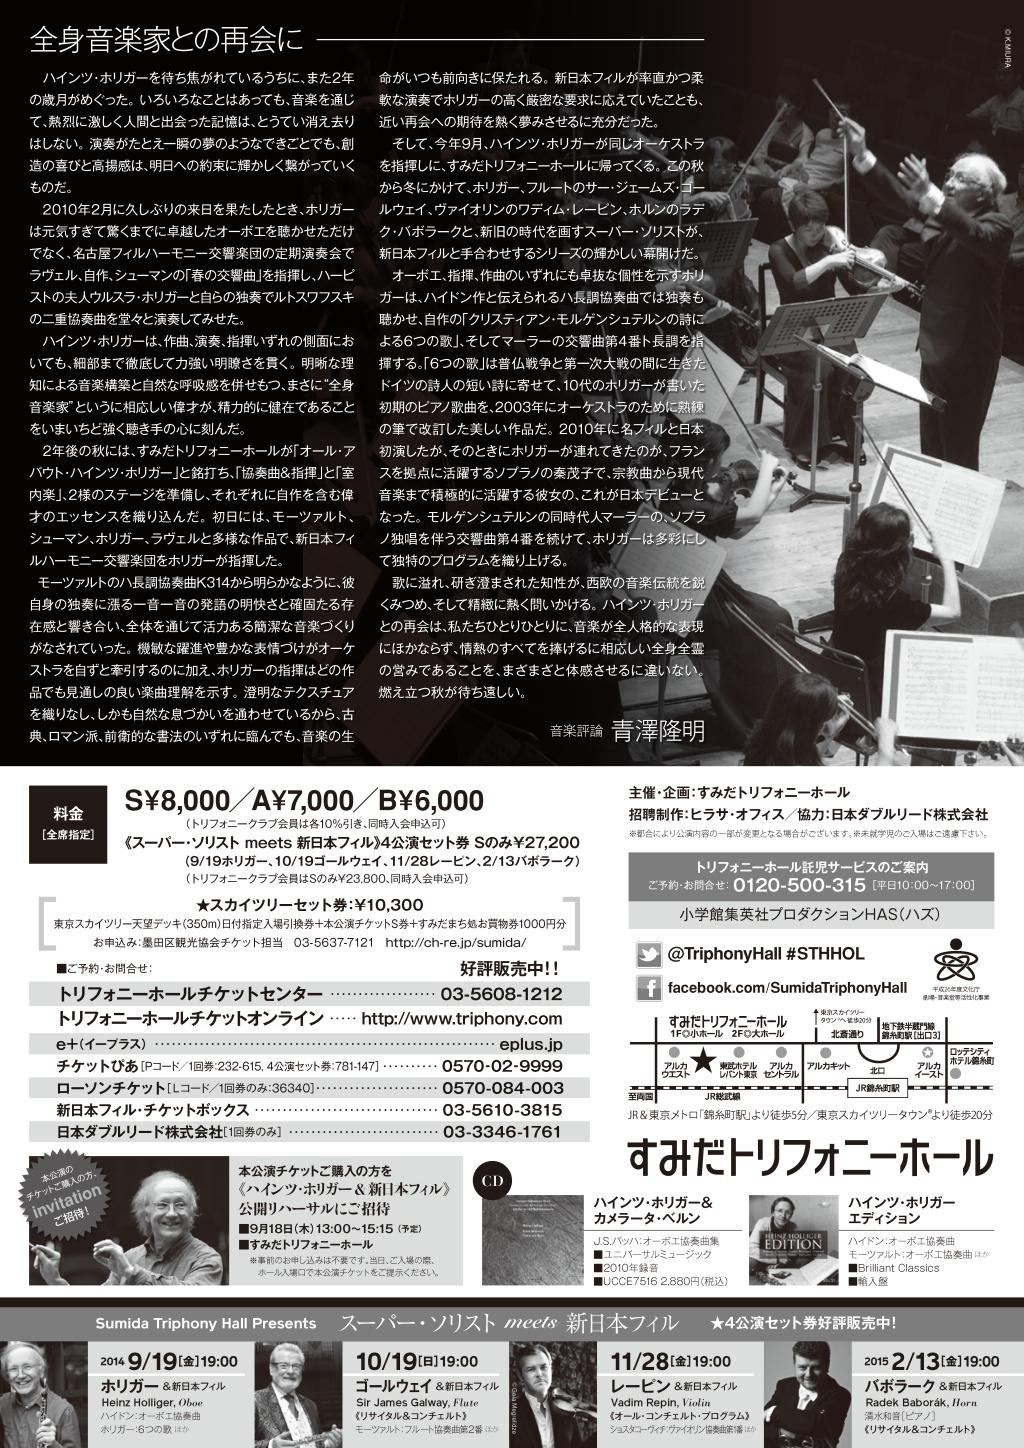 flyer/20140919holiger-ura.jpg